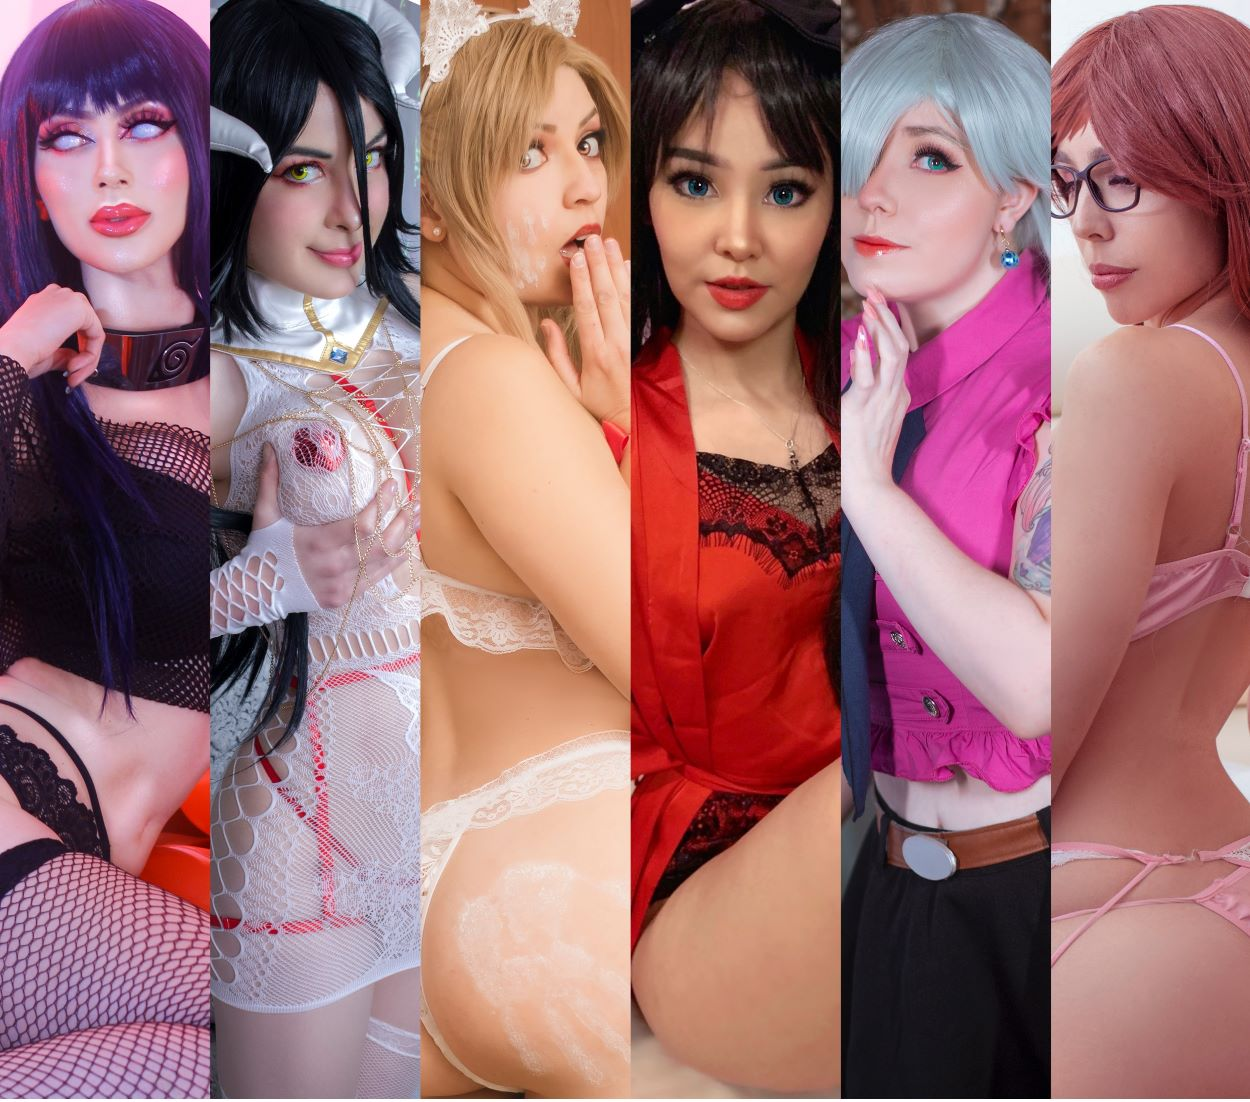 Cosplay add-on advert with the Puri Puri Squad girls | Cosplay Collection | Introducing EcchiToons!